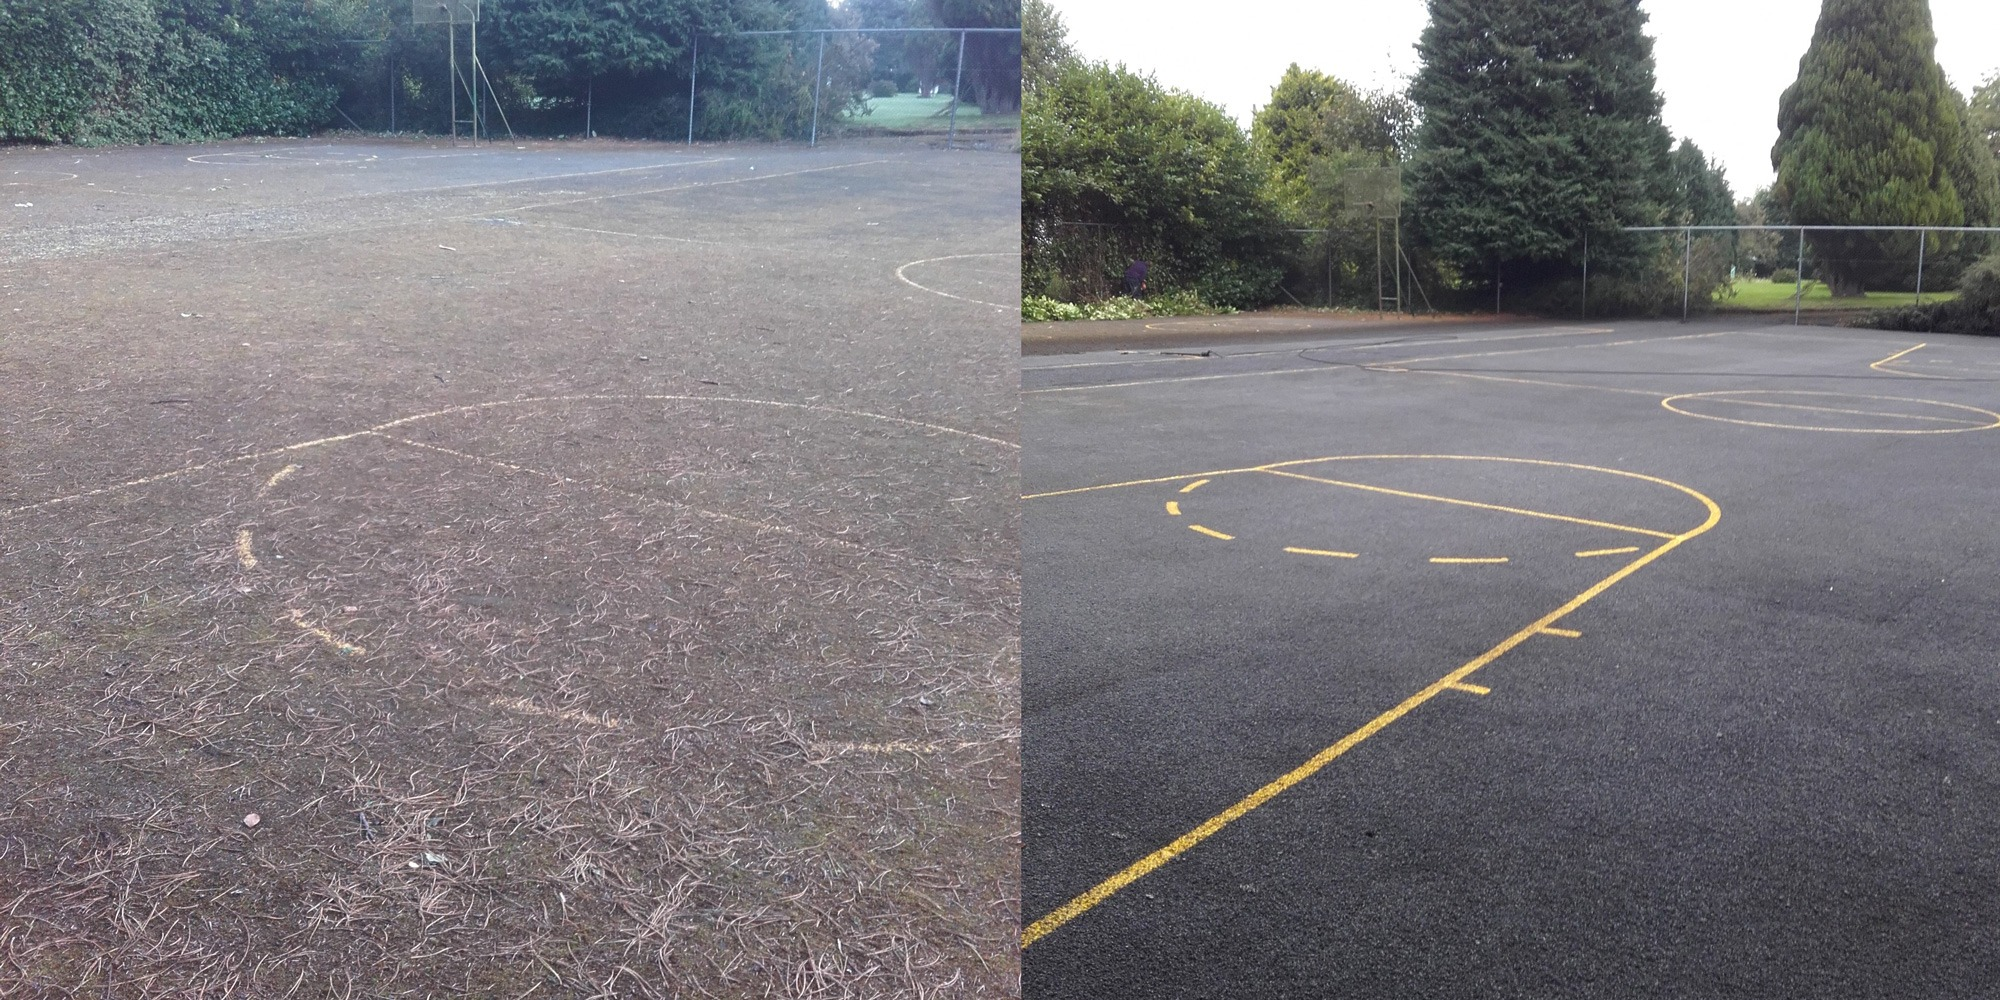 Tennis-court-&-basket-ball-court-cleaning-company-Mayo,-Galway,-Sligo,-Roscommon-Ireland